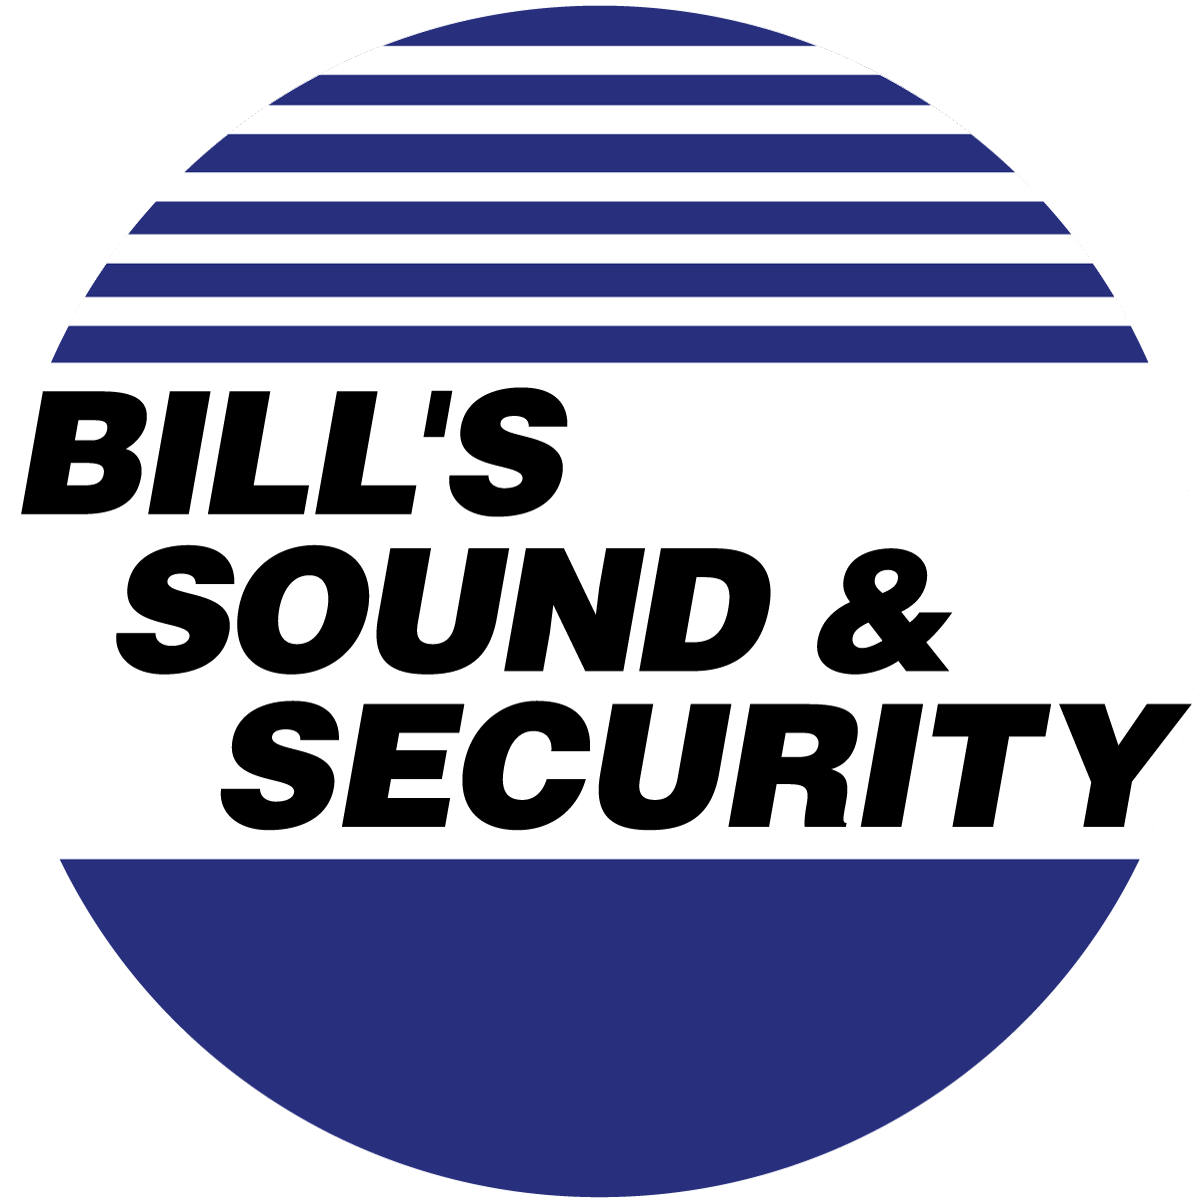 Bill's Sound & Security